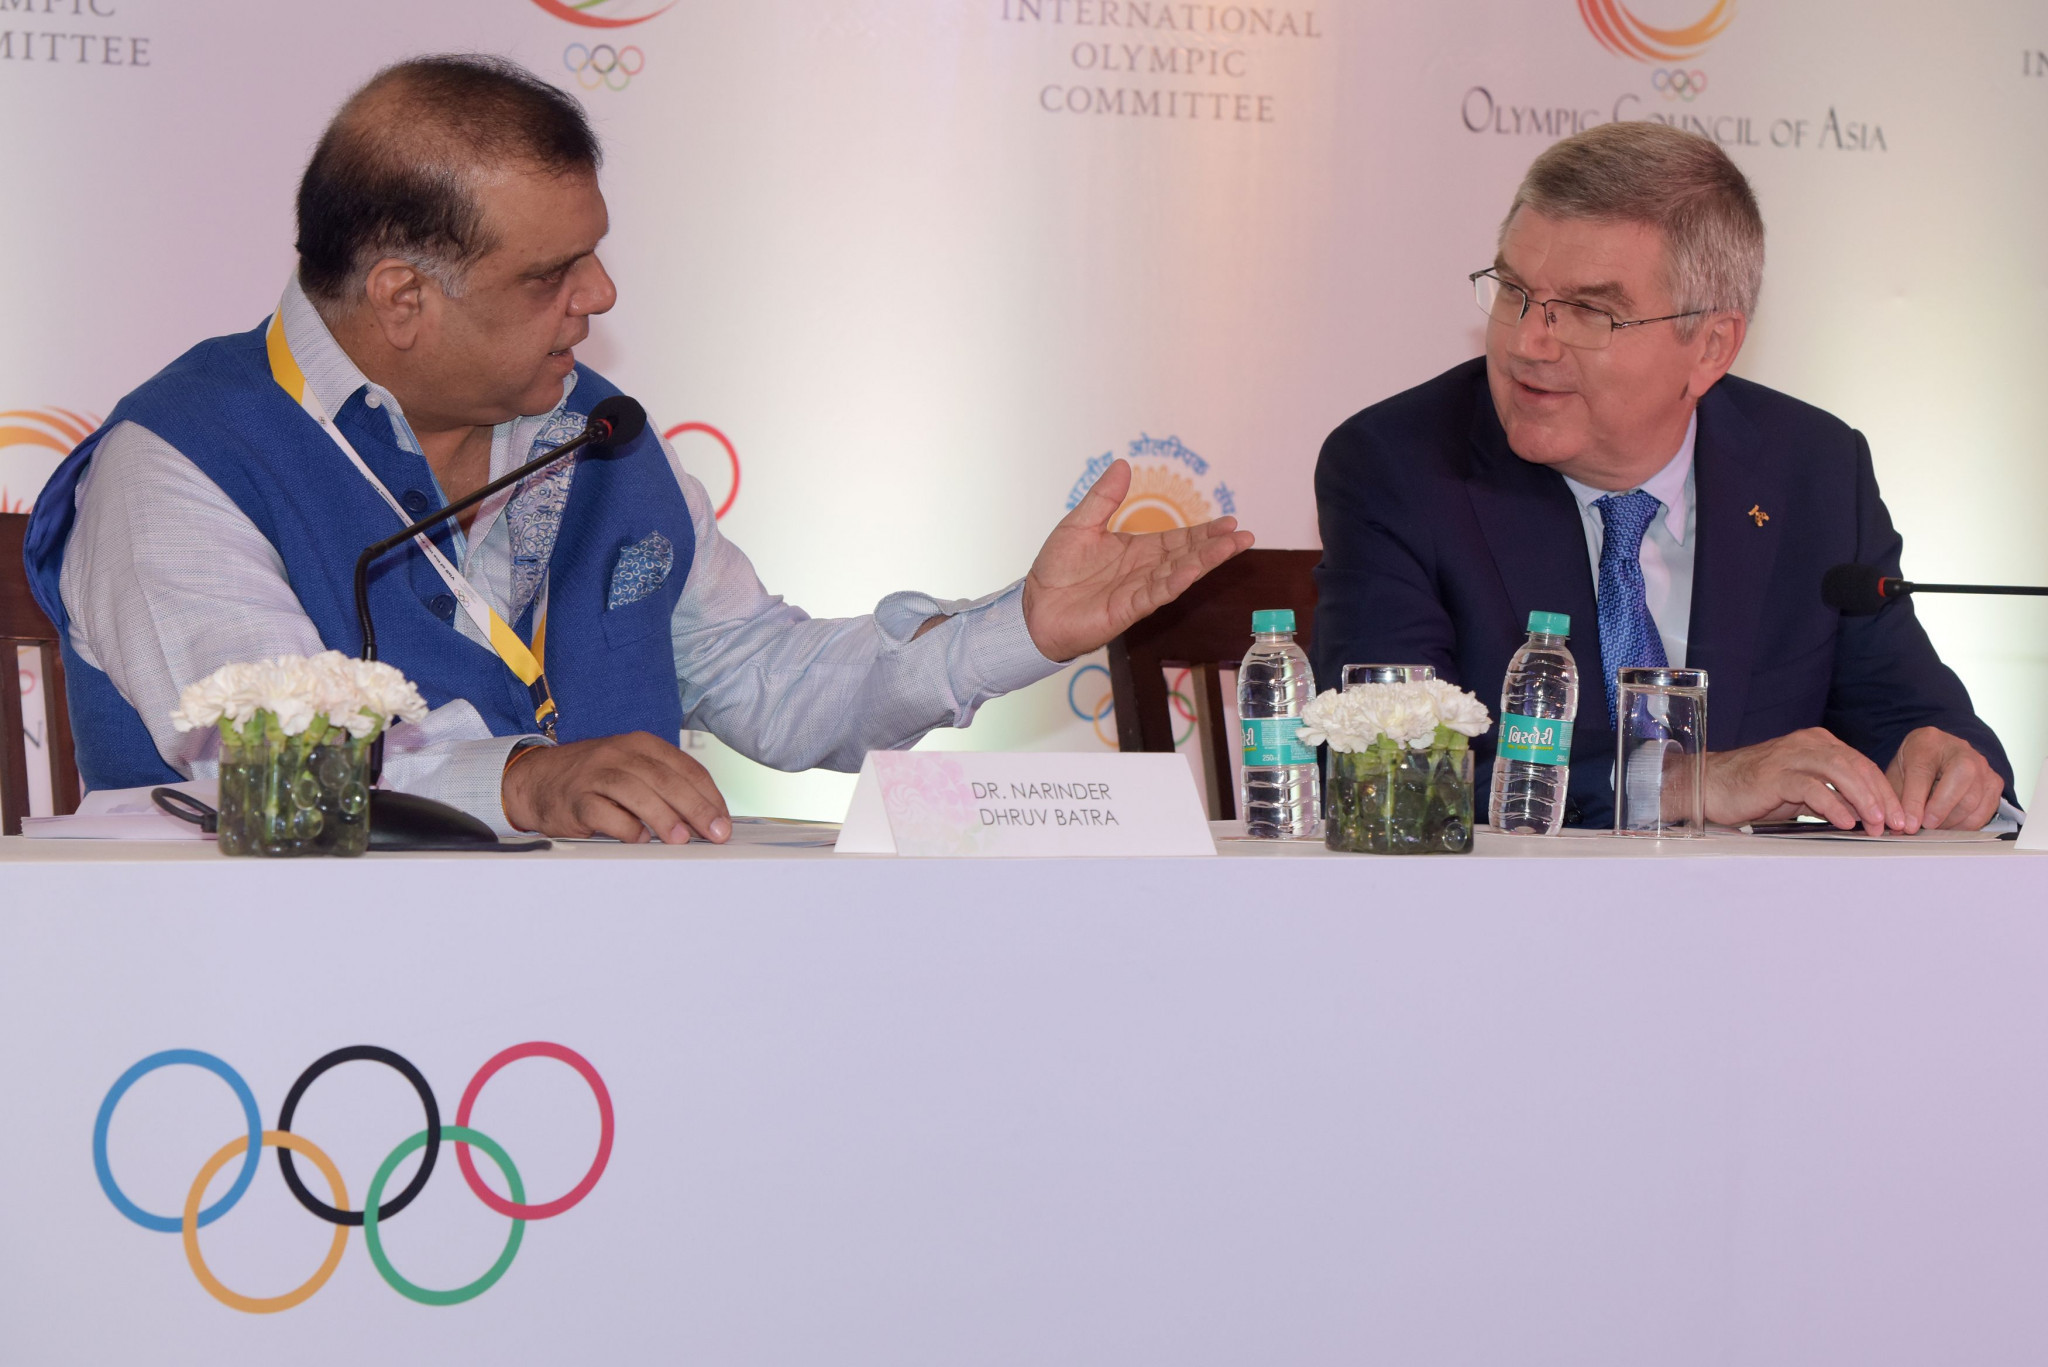 IOA President Narinder Batra has claimed that India has already opened discussions with the IOC about hosting the 2036 Olympic and Paralympic Games ©Getty Images